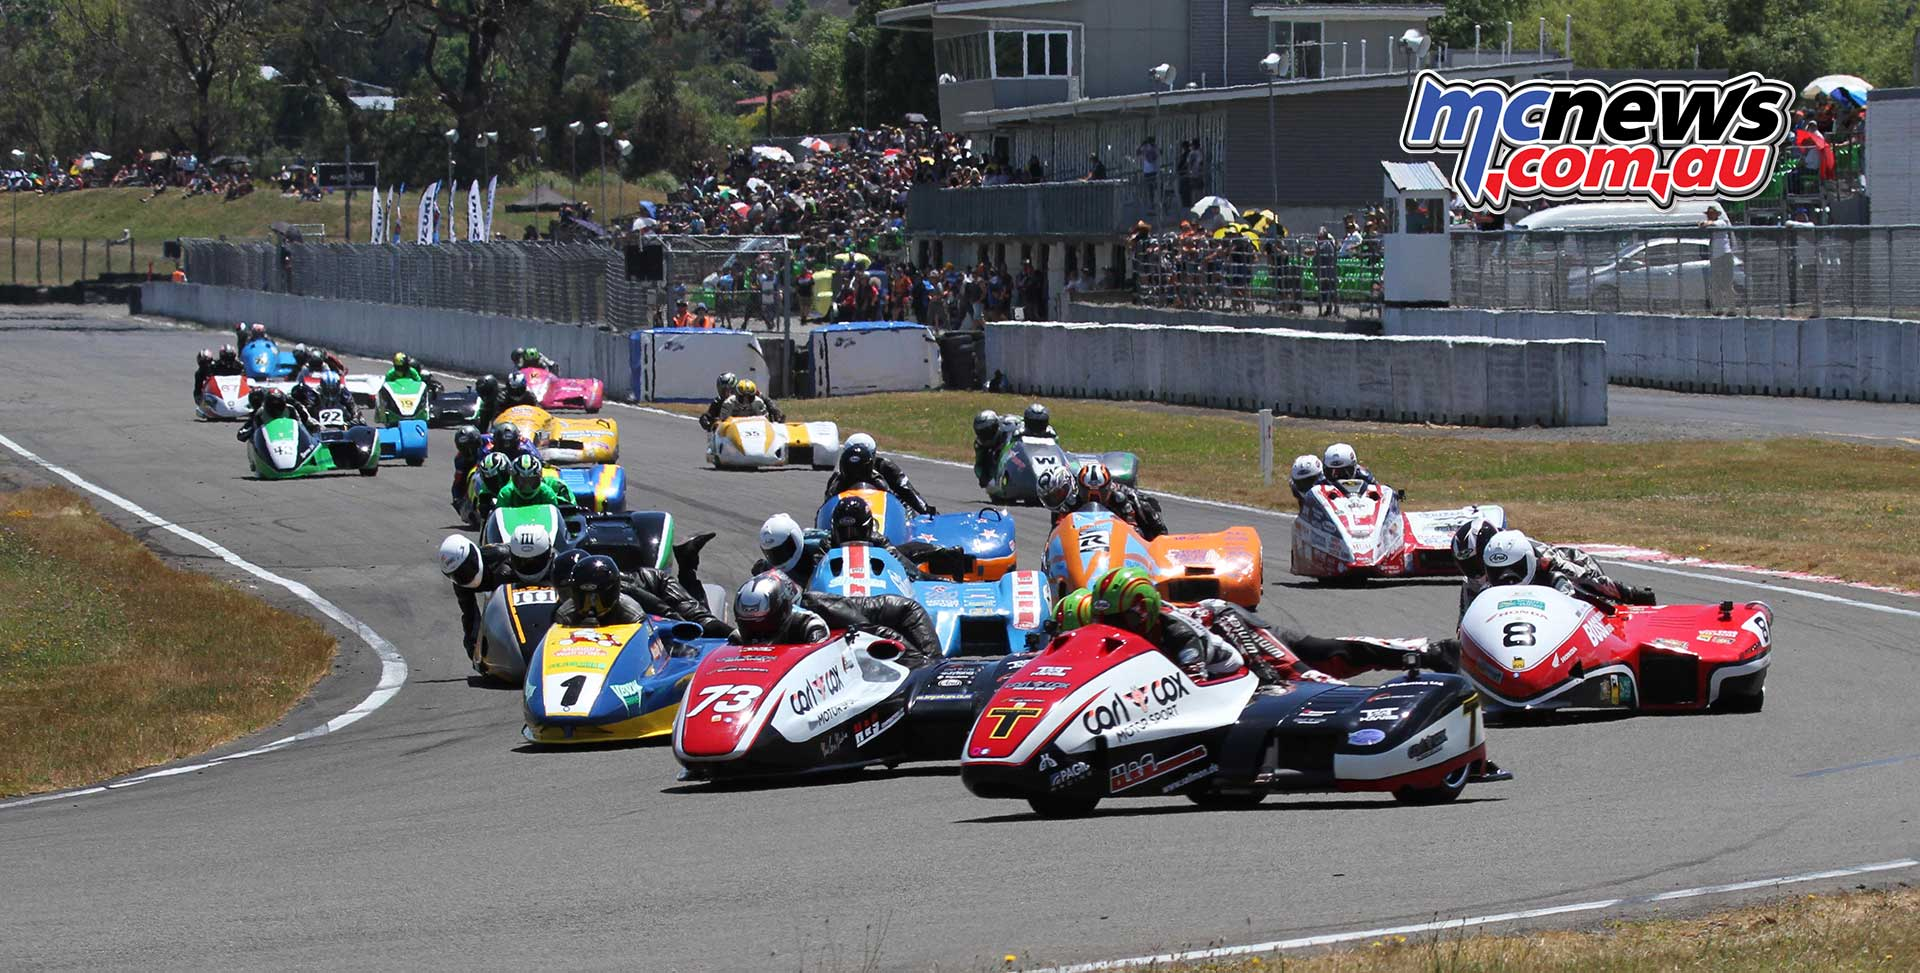 Tim Reeves leads a crowded sidecar field into turn one at Manfeild on Sunday